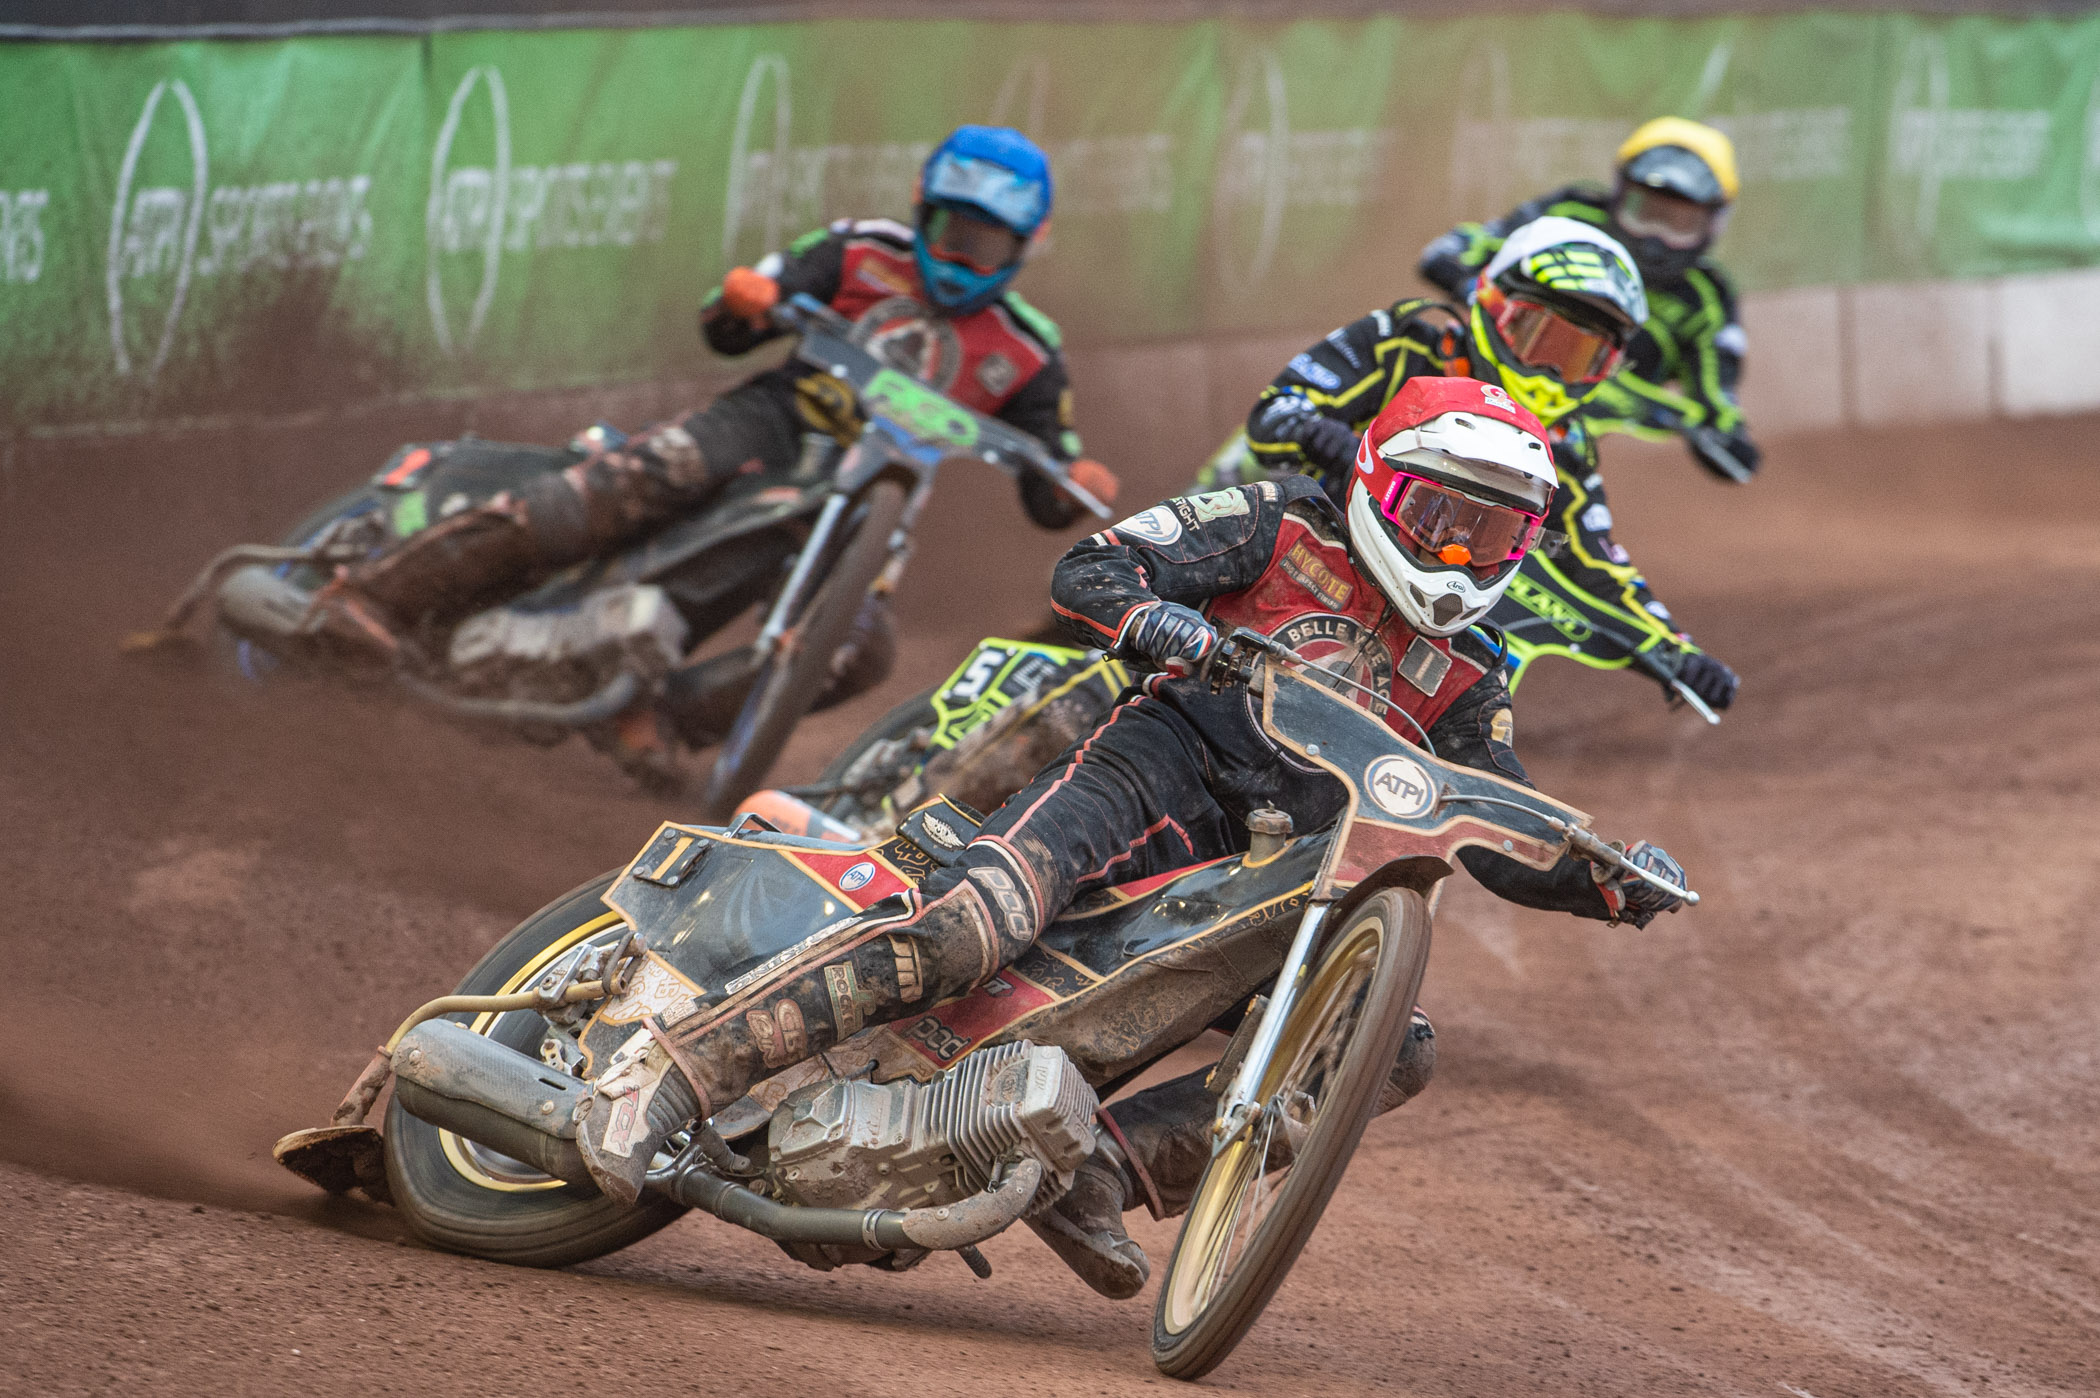 A dominant Heat 13 and Heat 15 display from Max Fricke helped turn the meeting in the Aces' favour